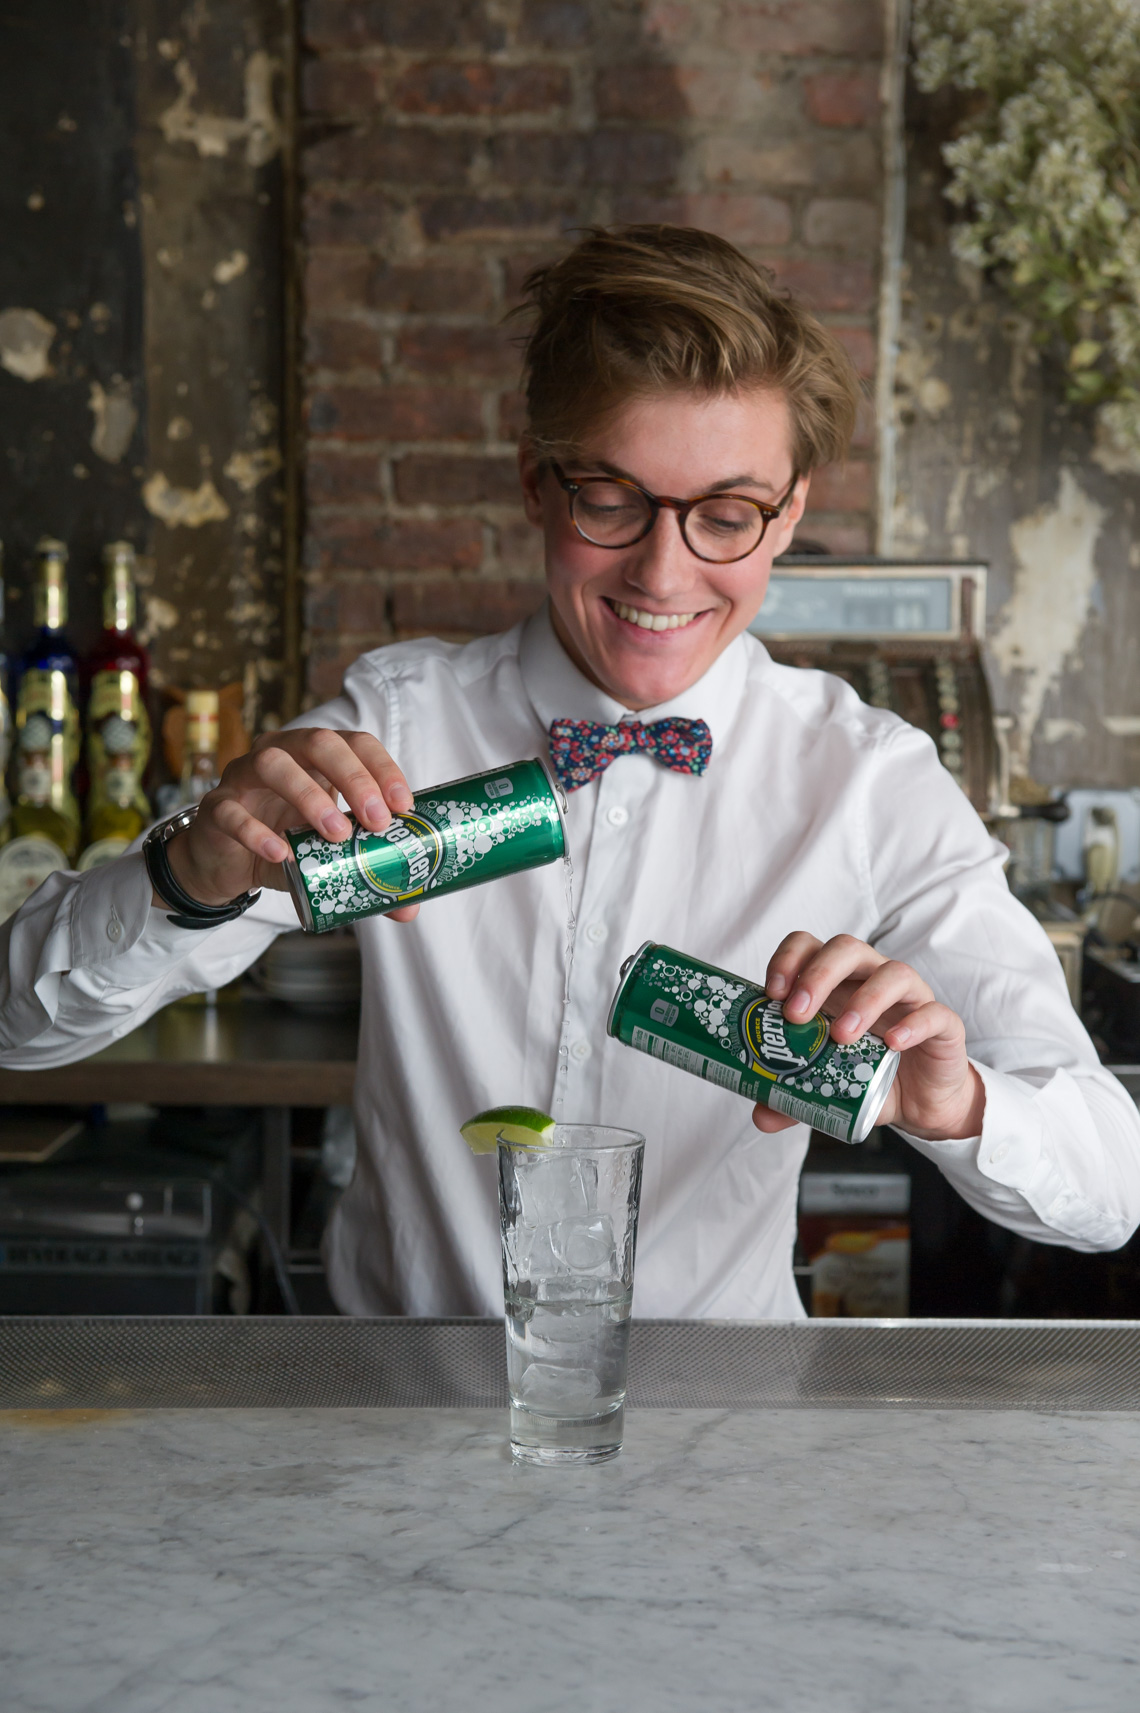 NYC Commercial Food Photographer - Perrier Cocktails